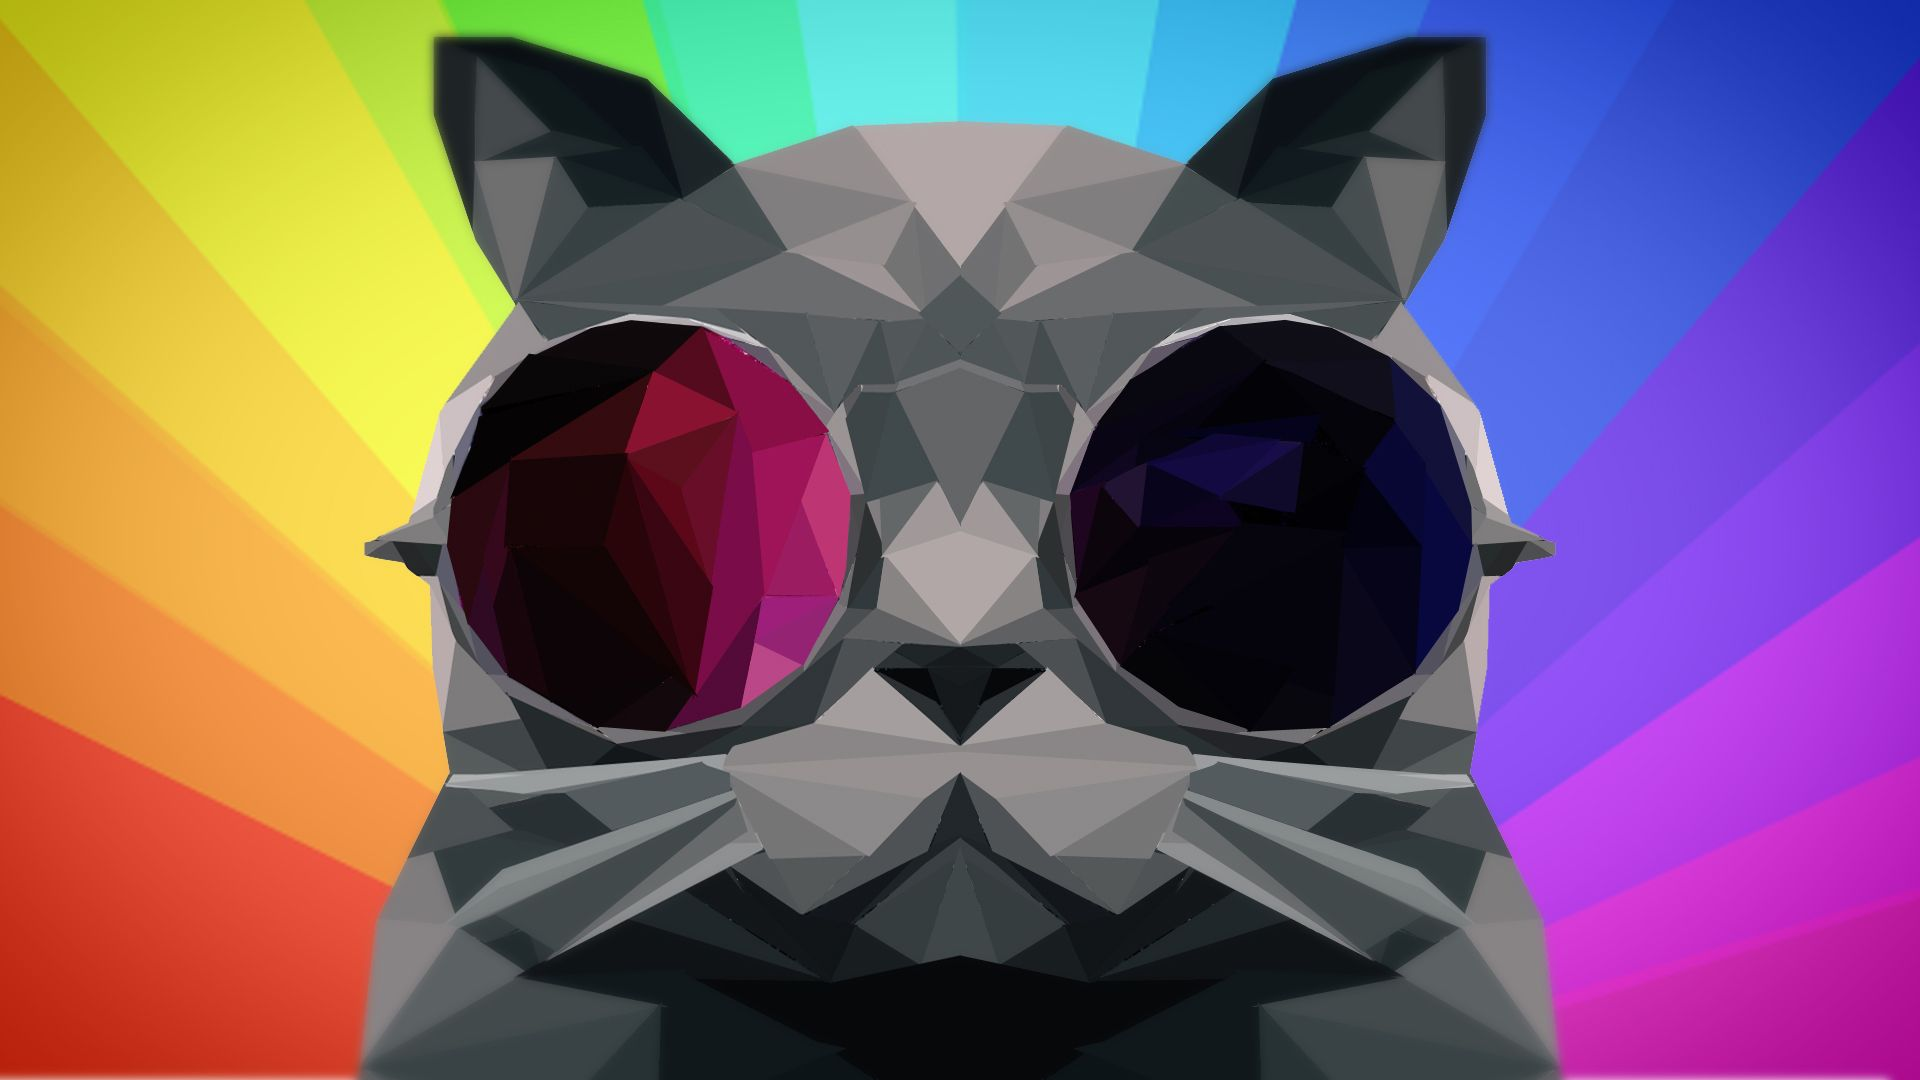 Rainbow Poly Cat [1920x1080] 4k wallpaper for mobile, R